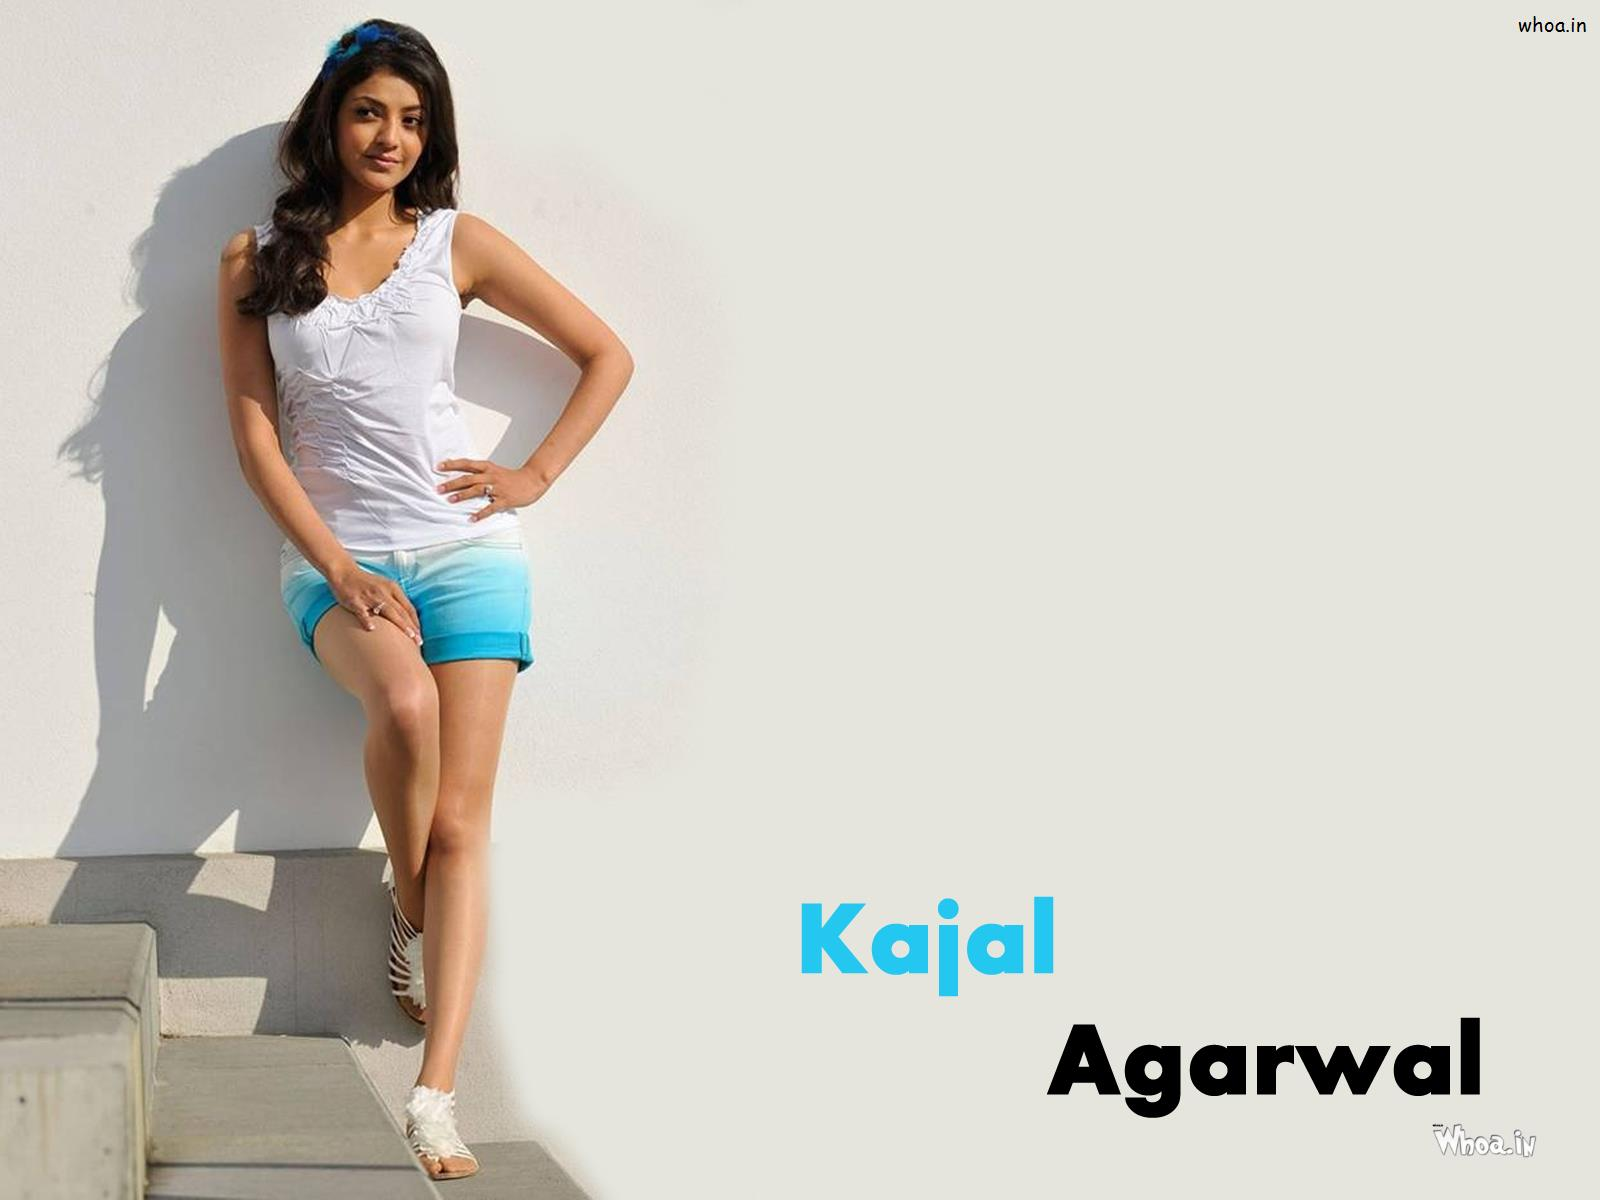 kajal agarwal hot in white top hd wallpaper